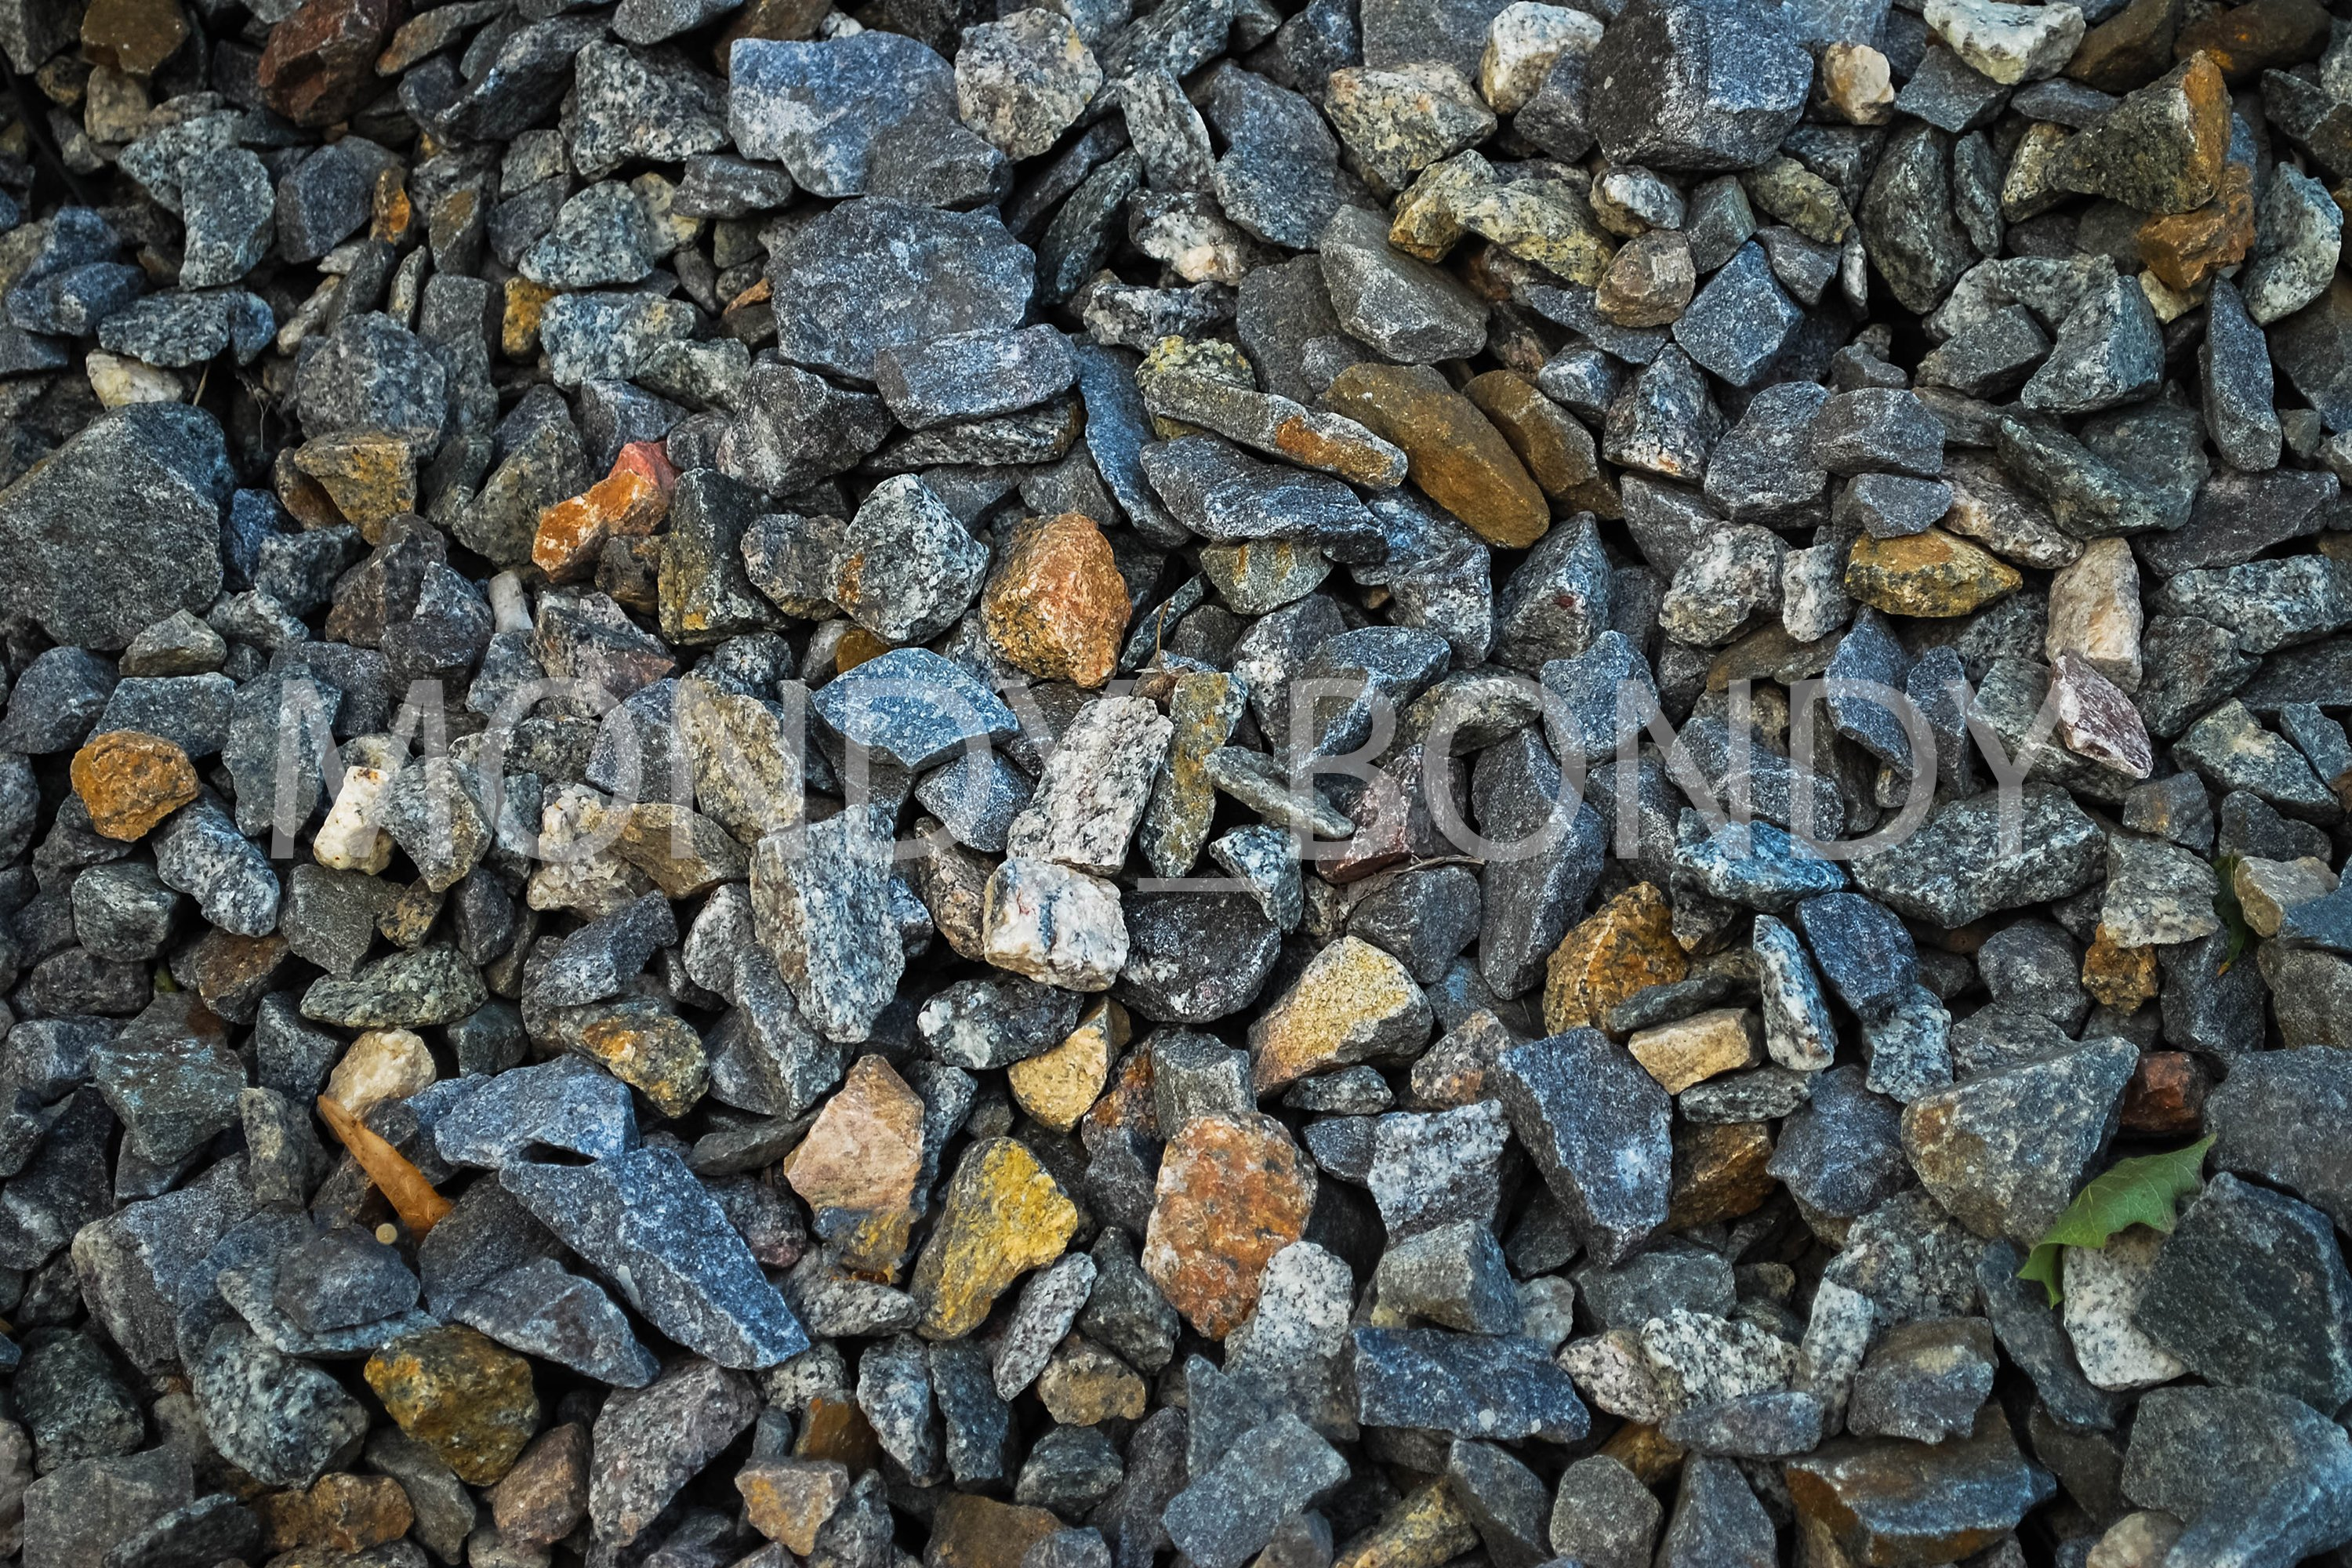 Texture of small stones close up example image 1